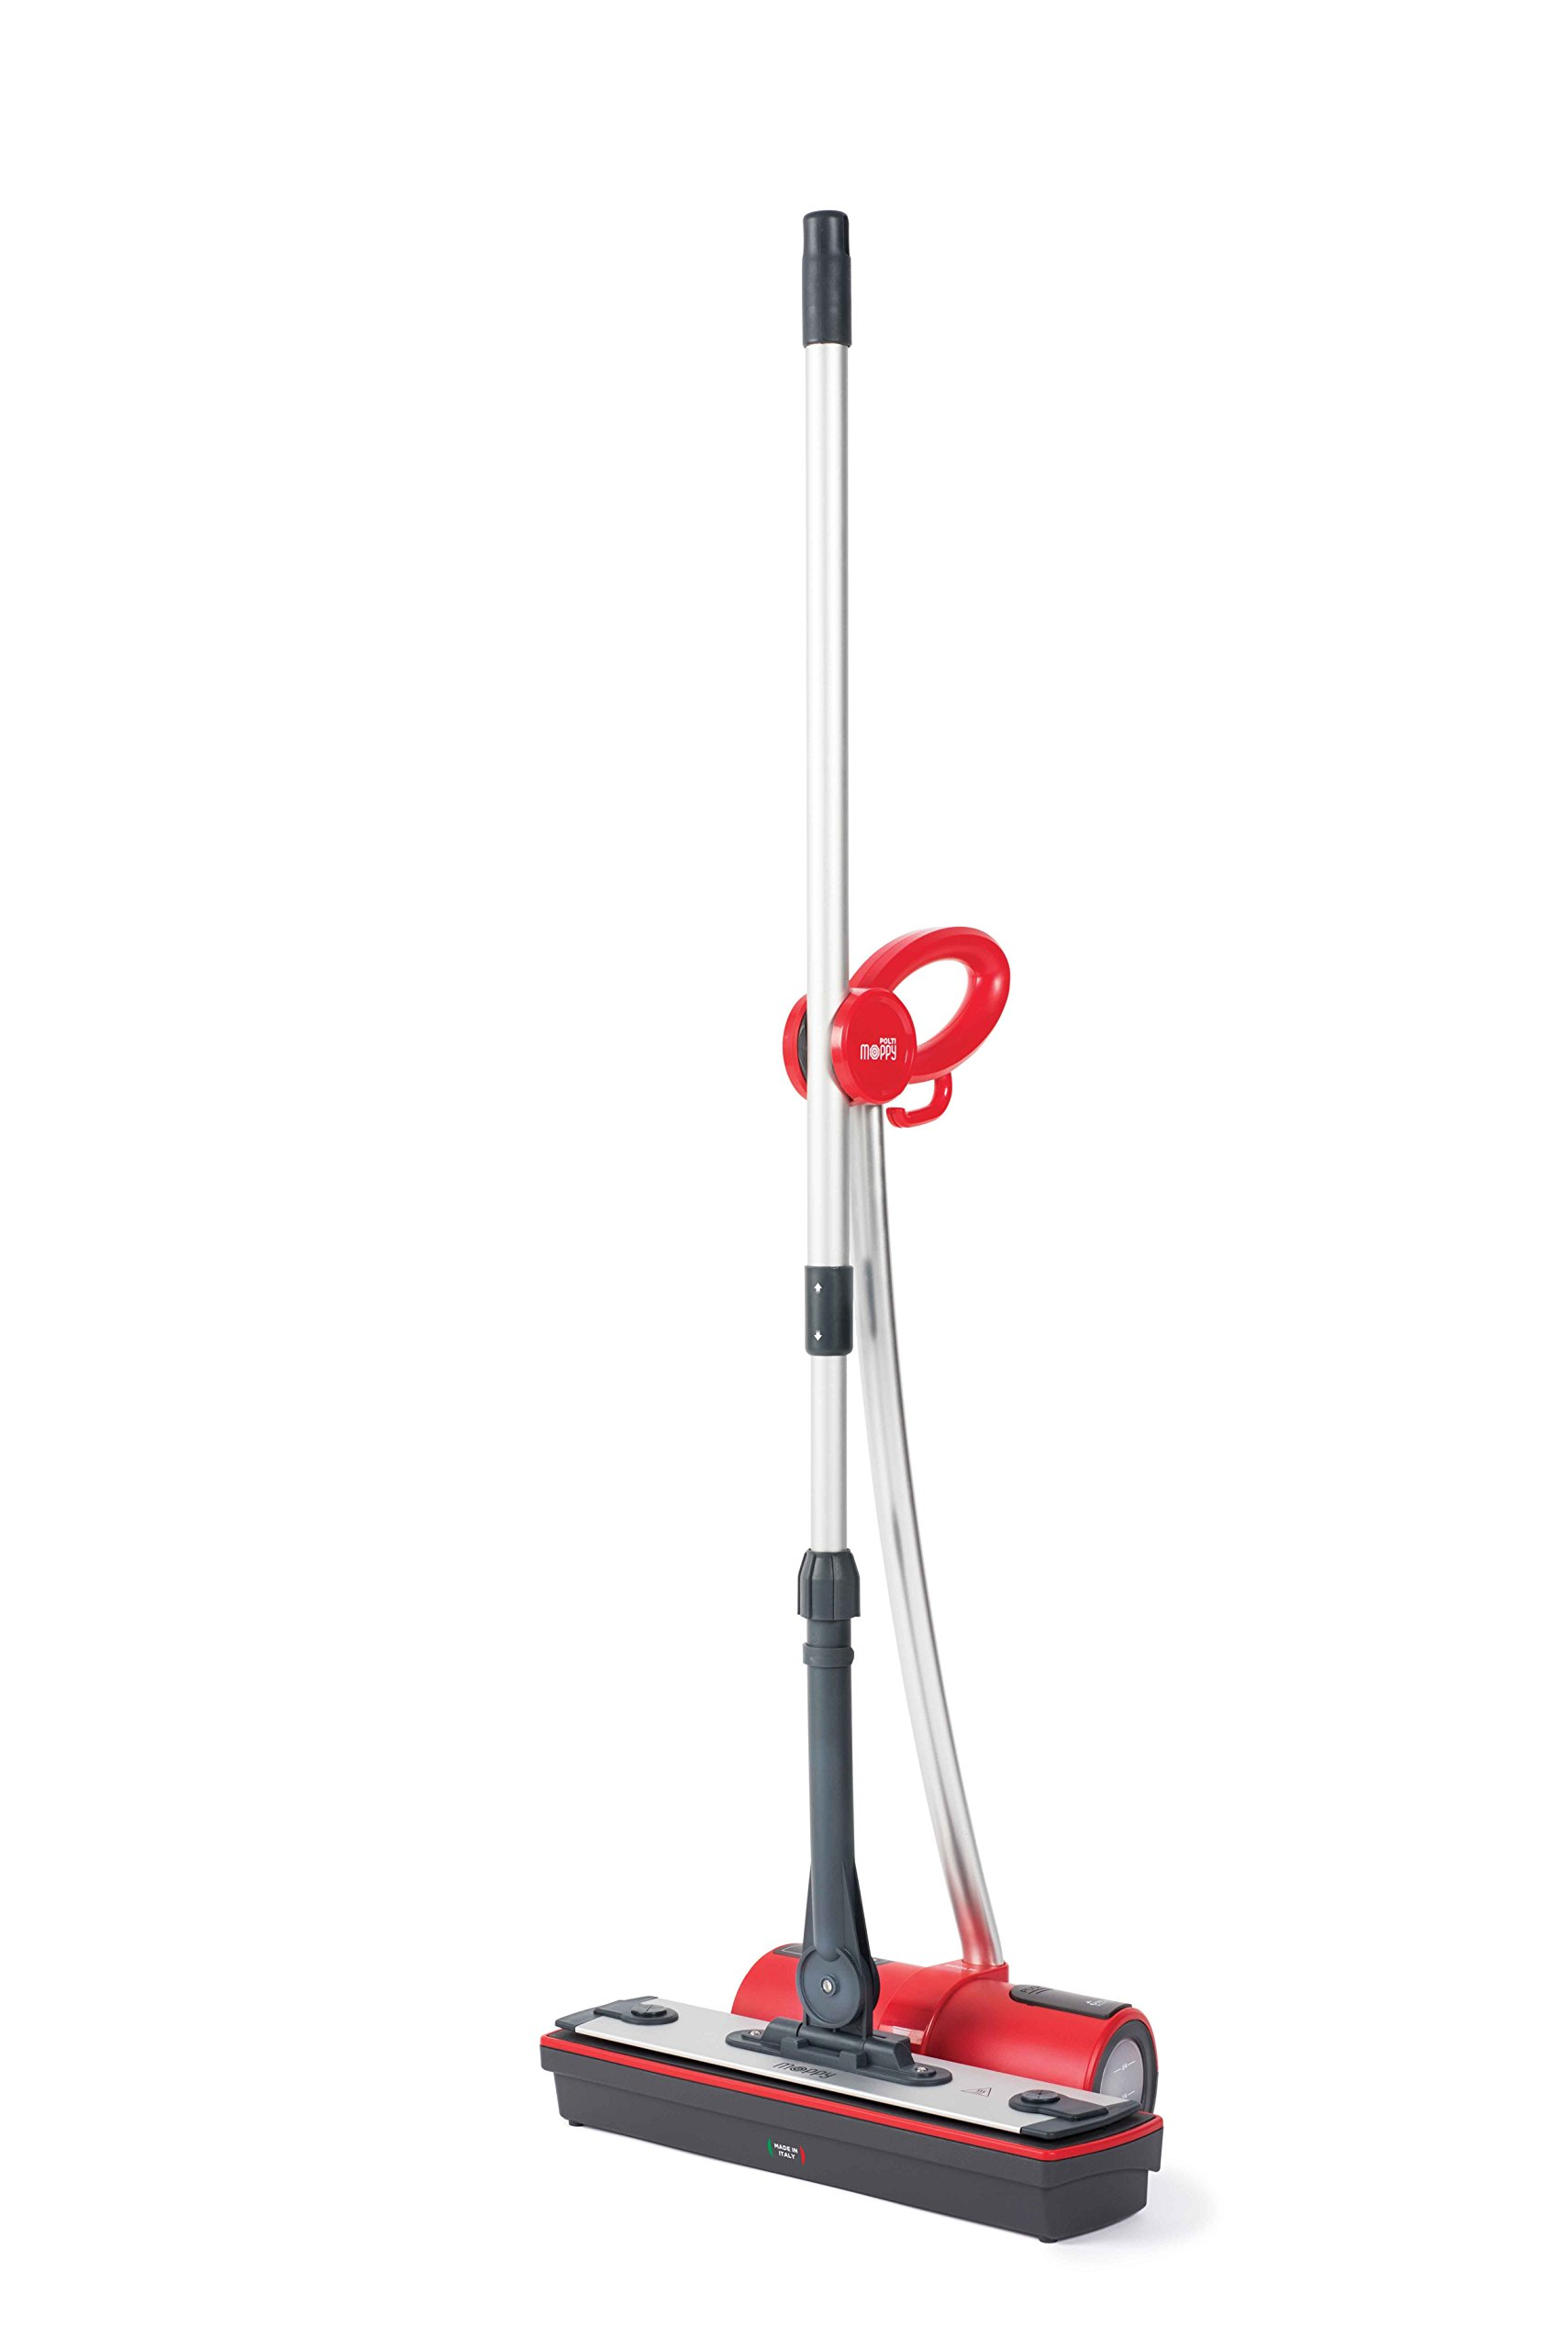 POLTI Moppy Cordless Steam Cleaner Mop - Marble, Tile, Hardwood Floor Cleaner by POLTI